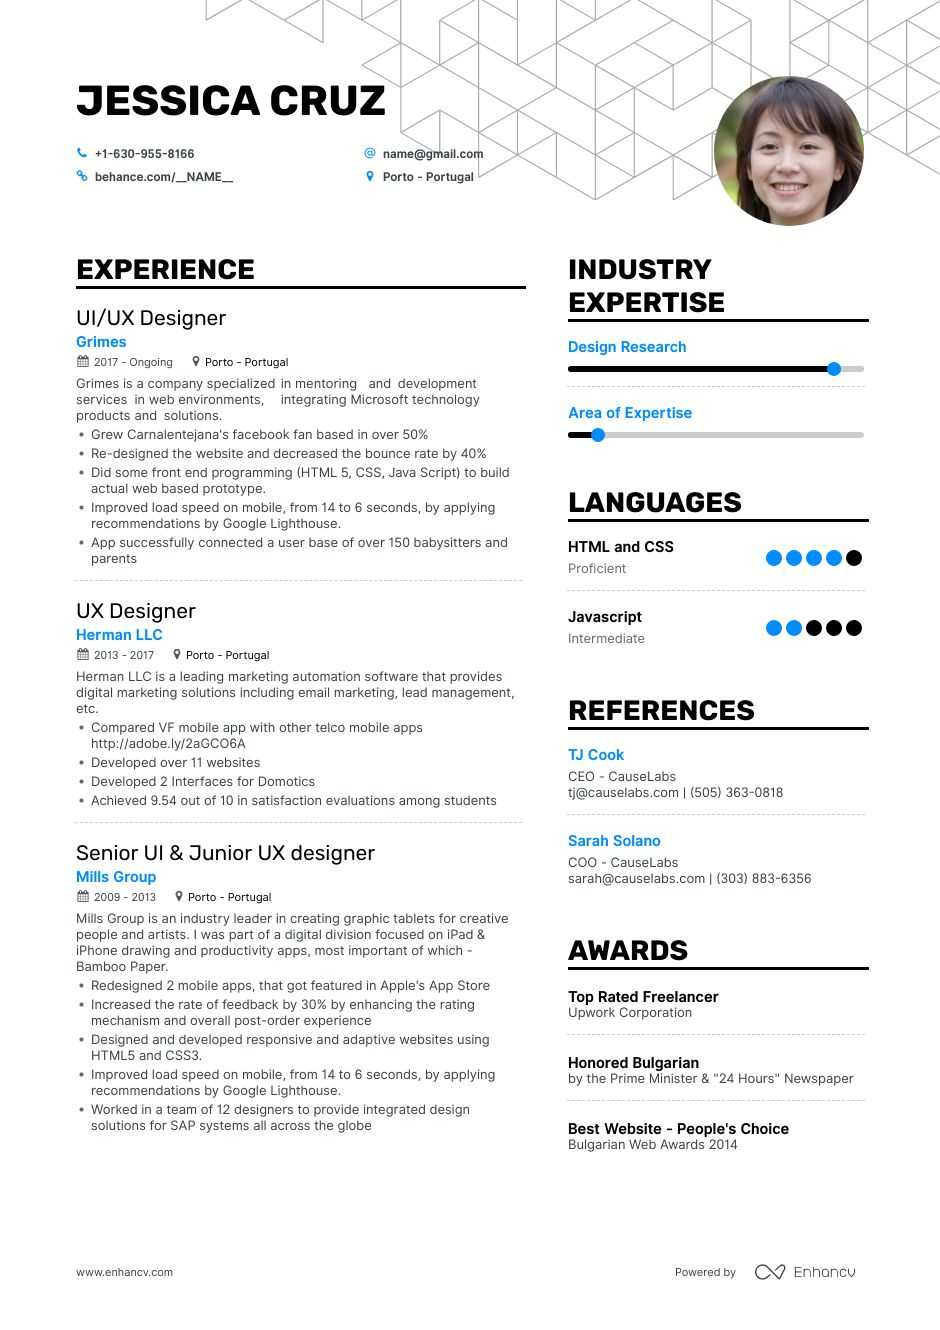 User Experience Designer Resume Sample لم يسبق له مثيل الصور